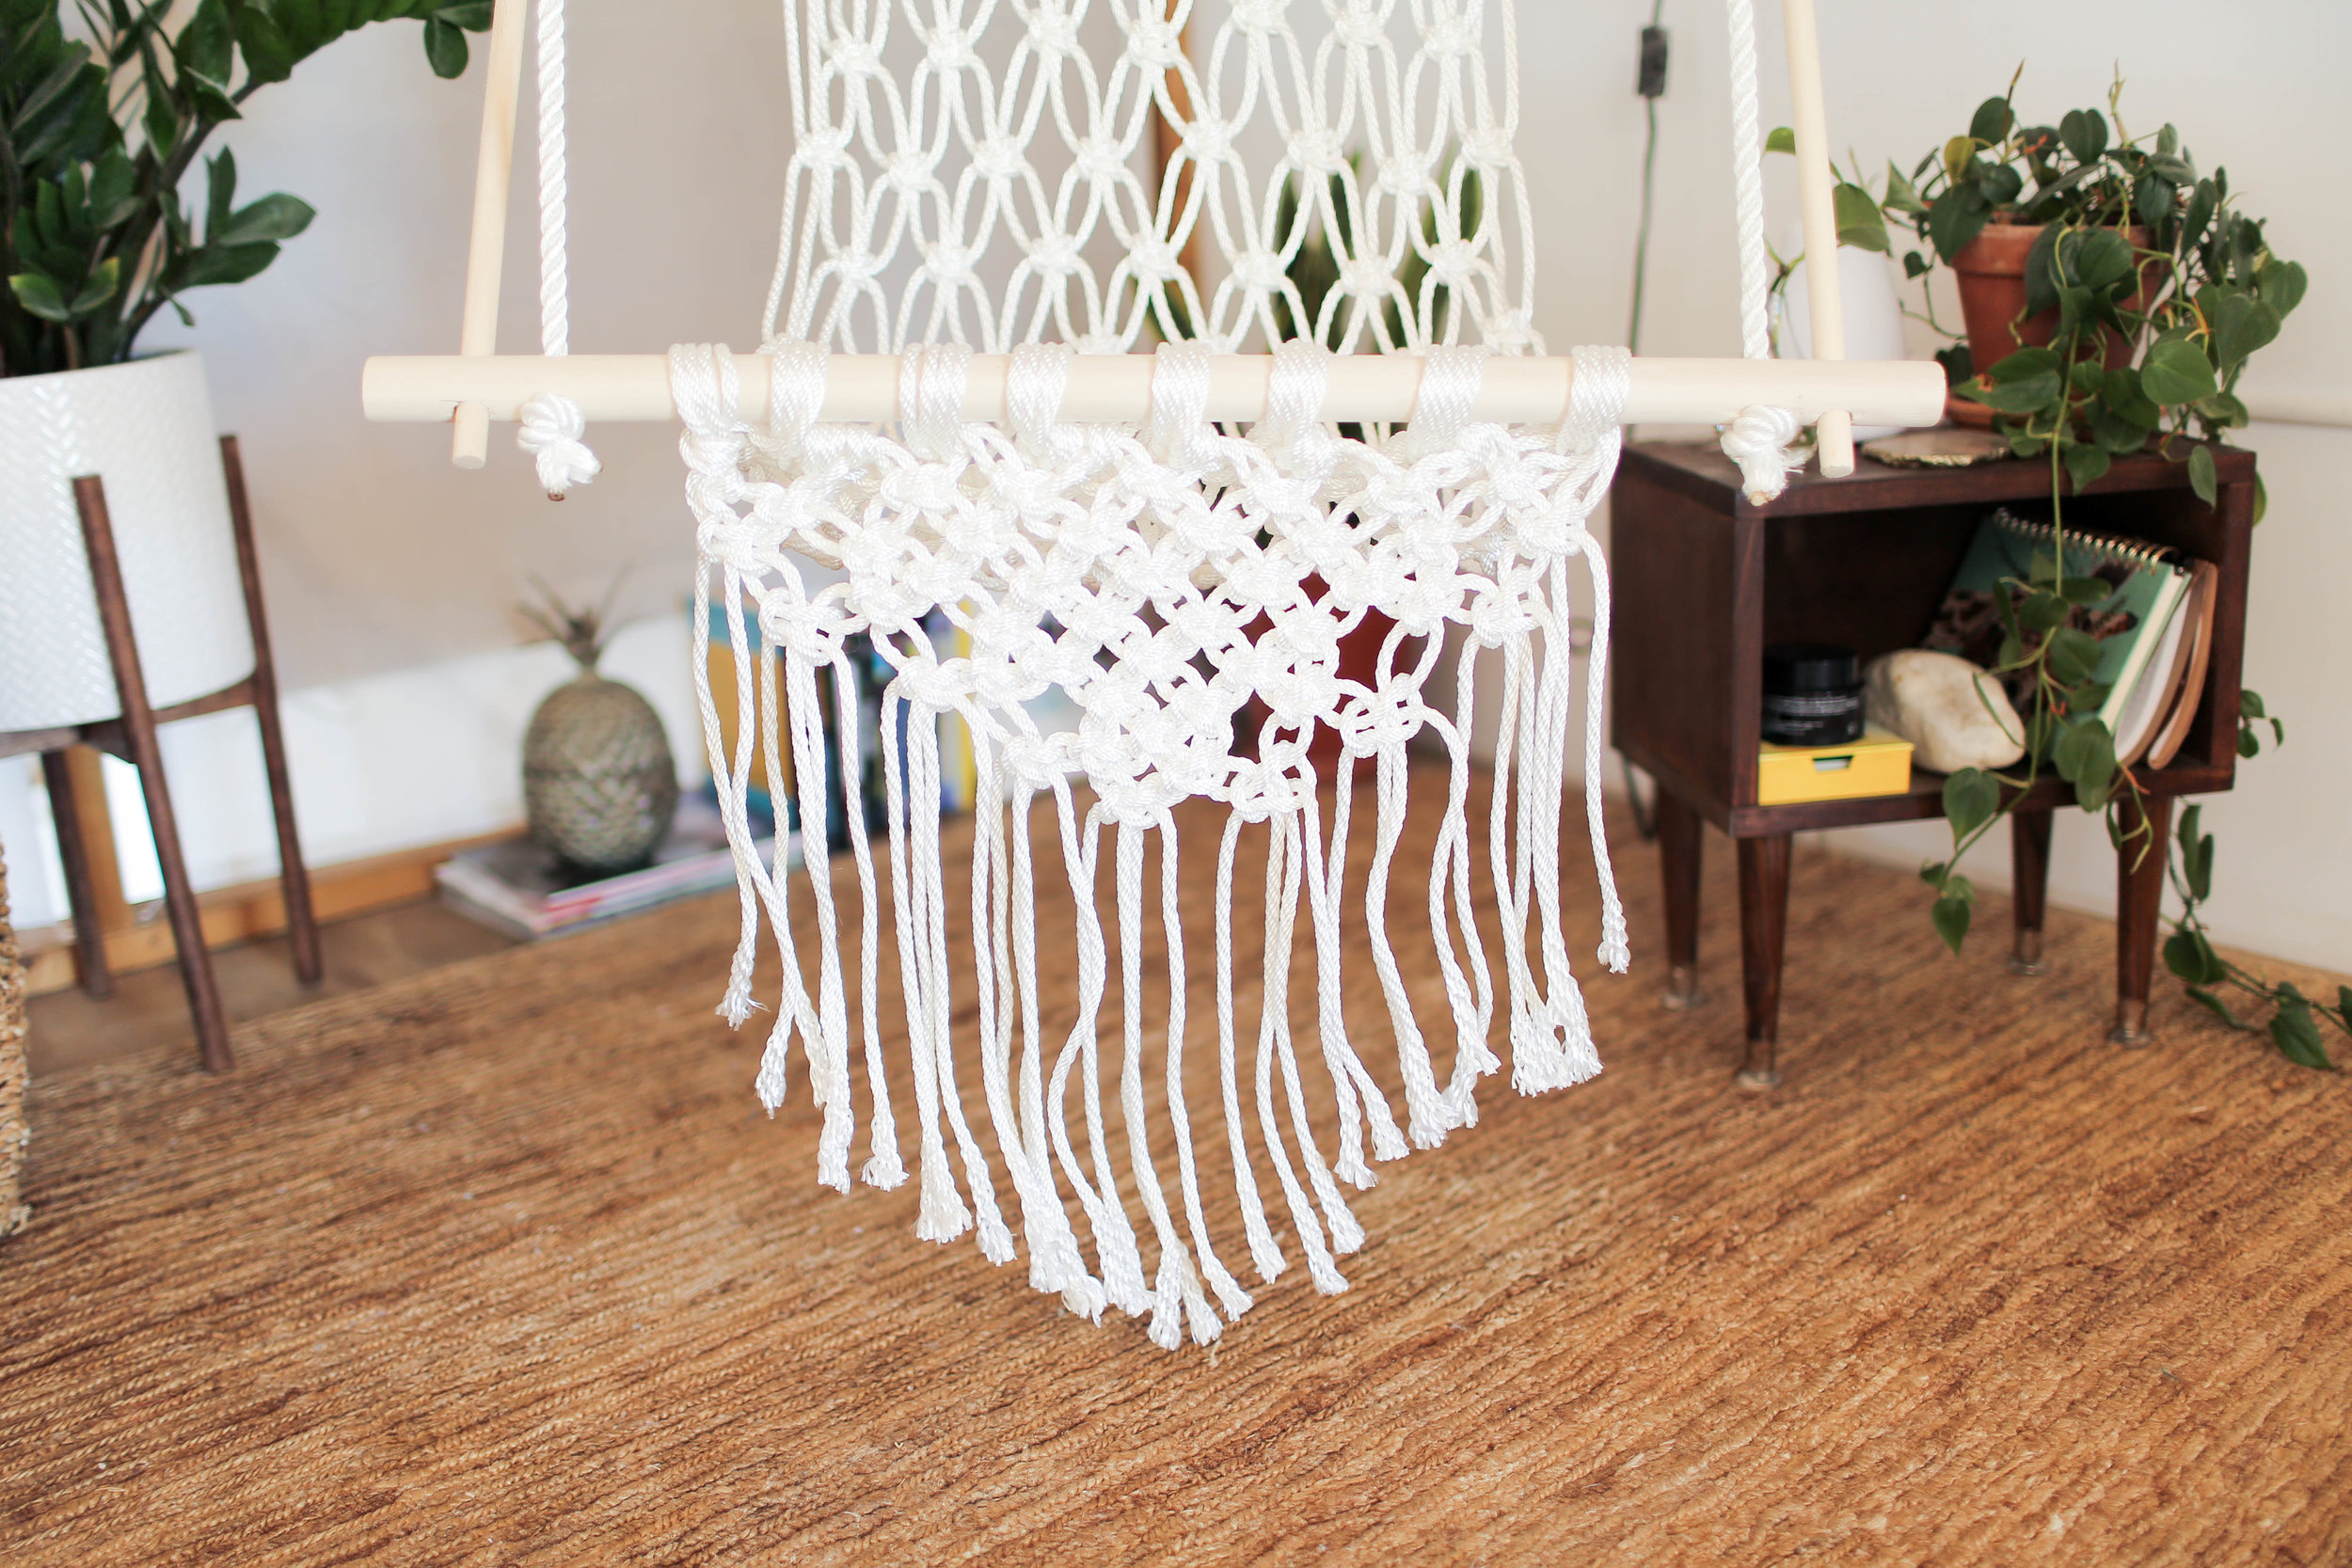 how to make a hanging chair covers pier one diy macrame the sorry girls if you be sure send us photo on instagram thesorrygirls using hashtag sorrygirlssquad also check out video below for